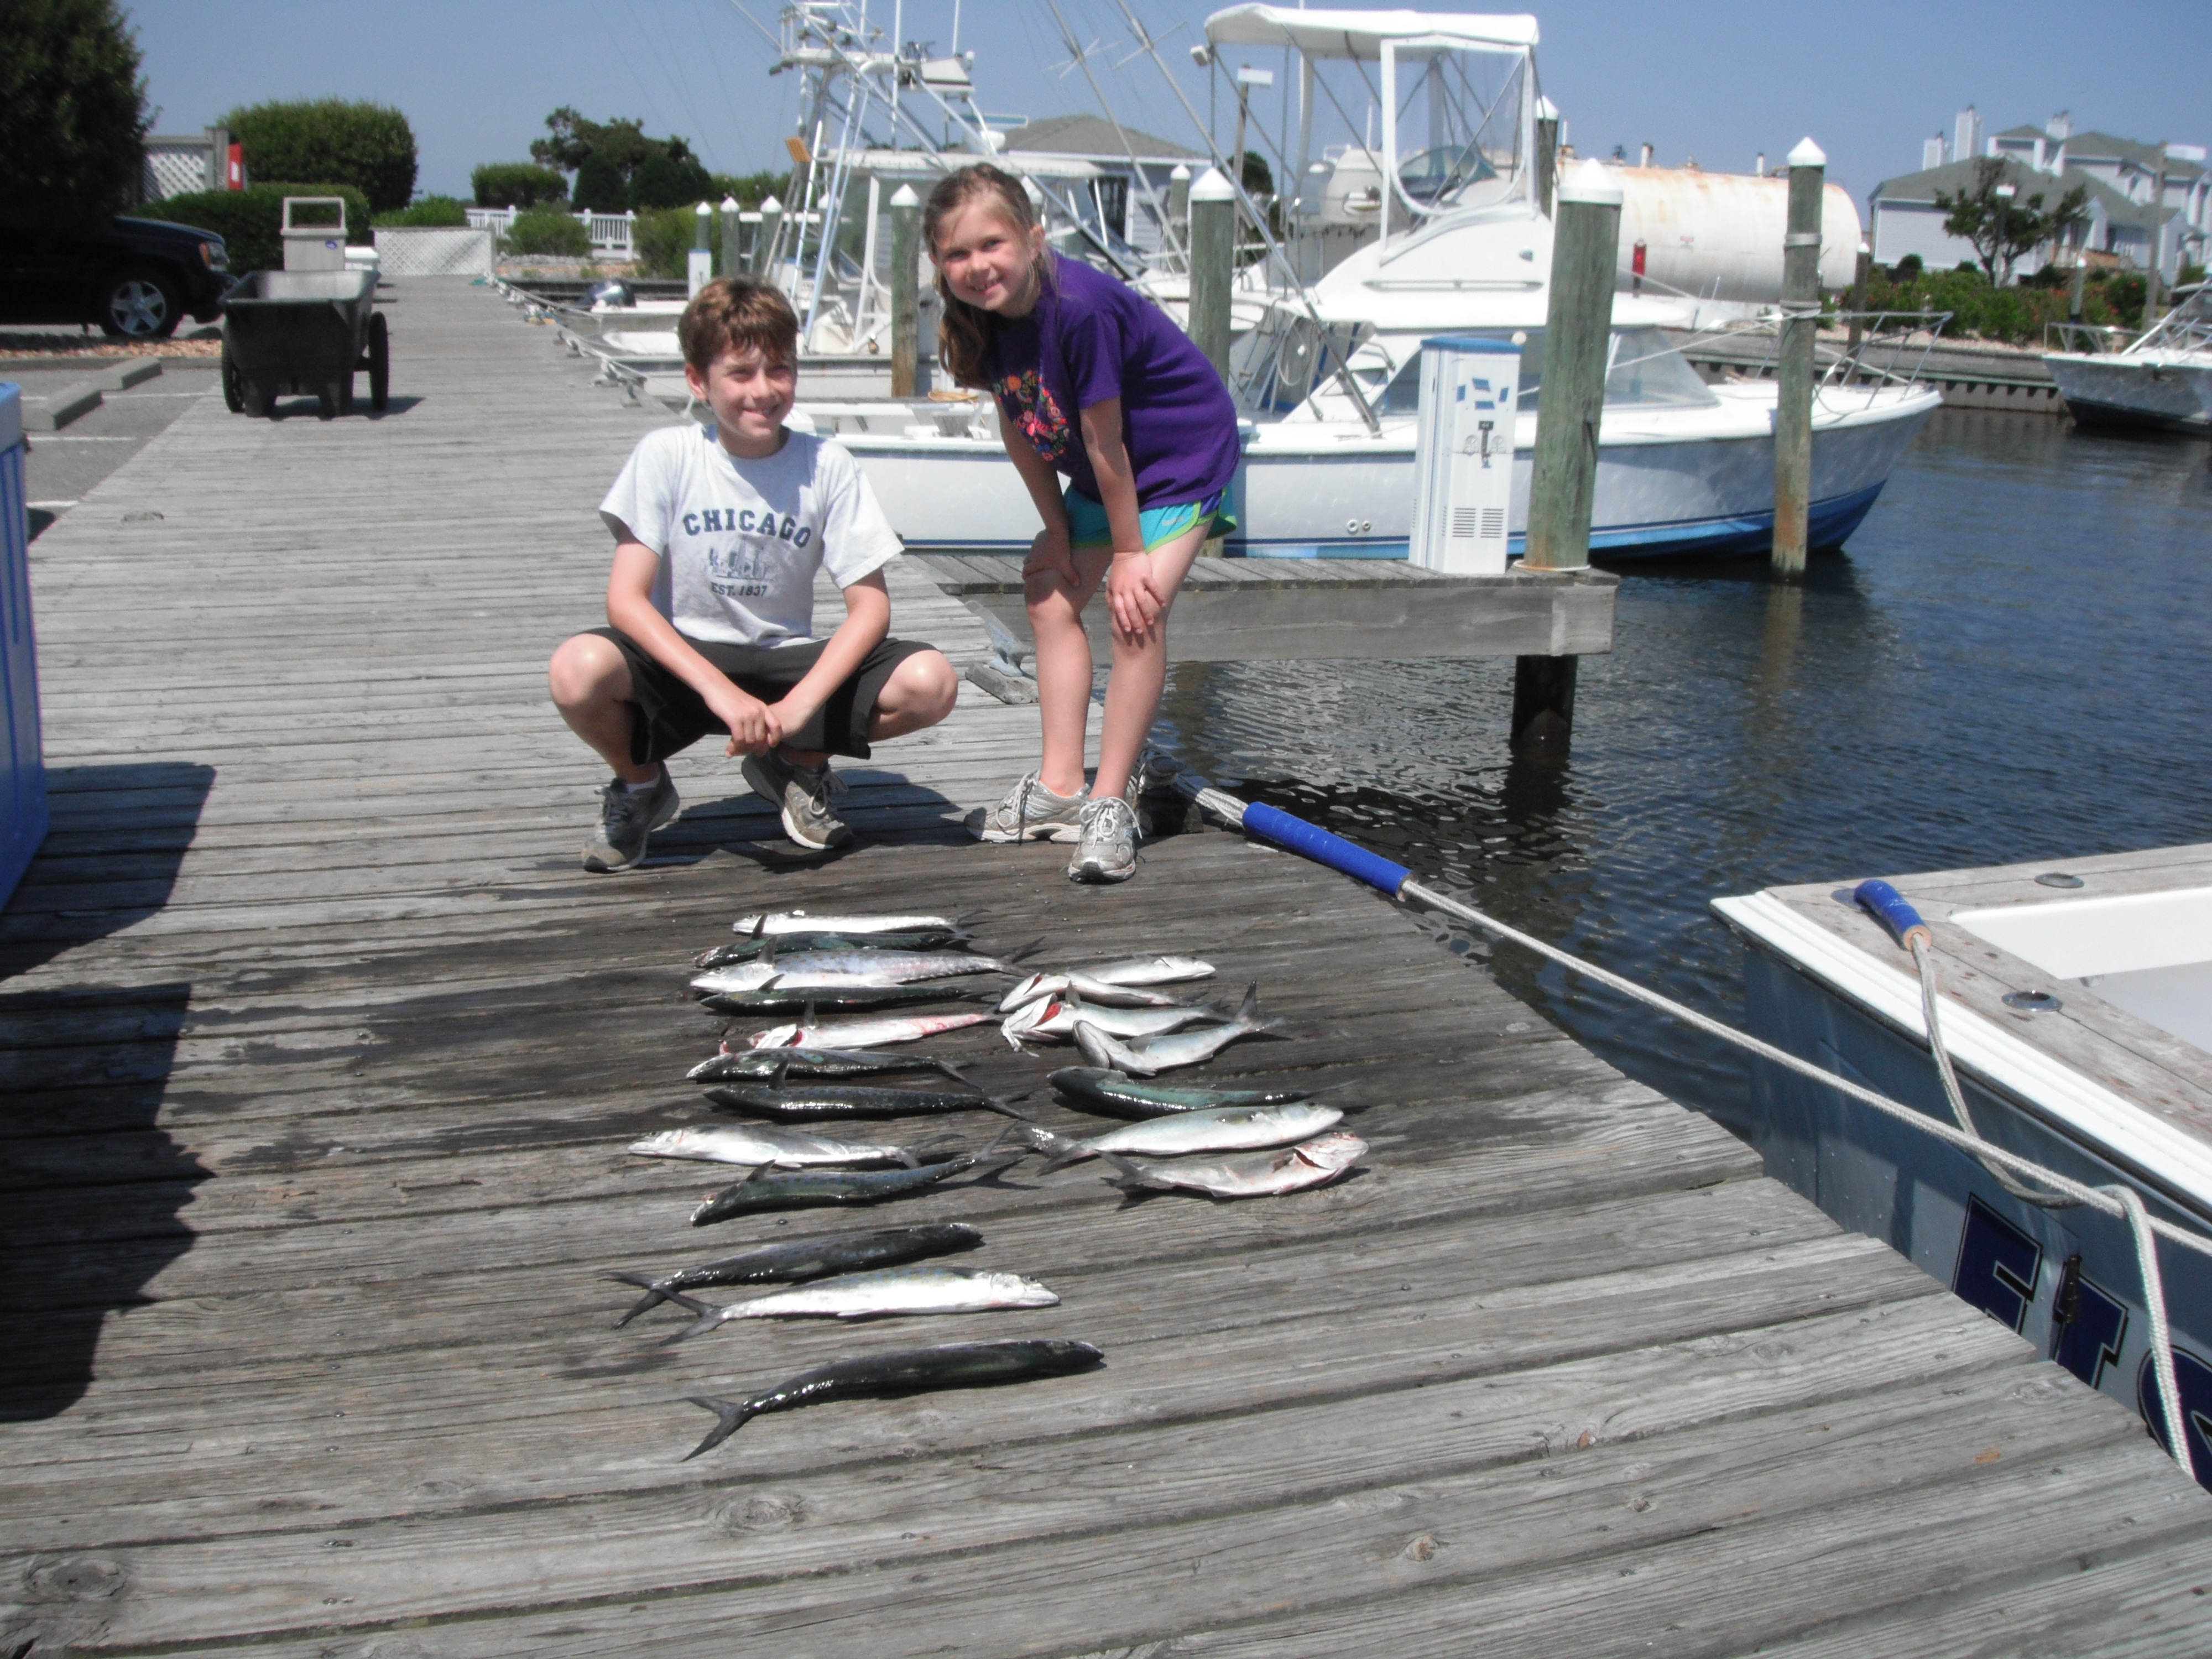 Outer banks charters nearshore june 9 for Obx charter fishing